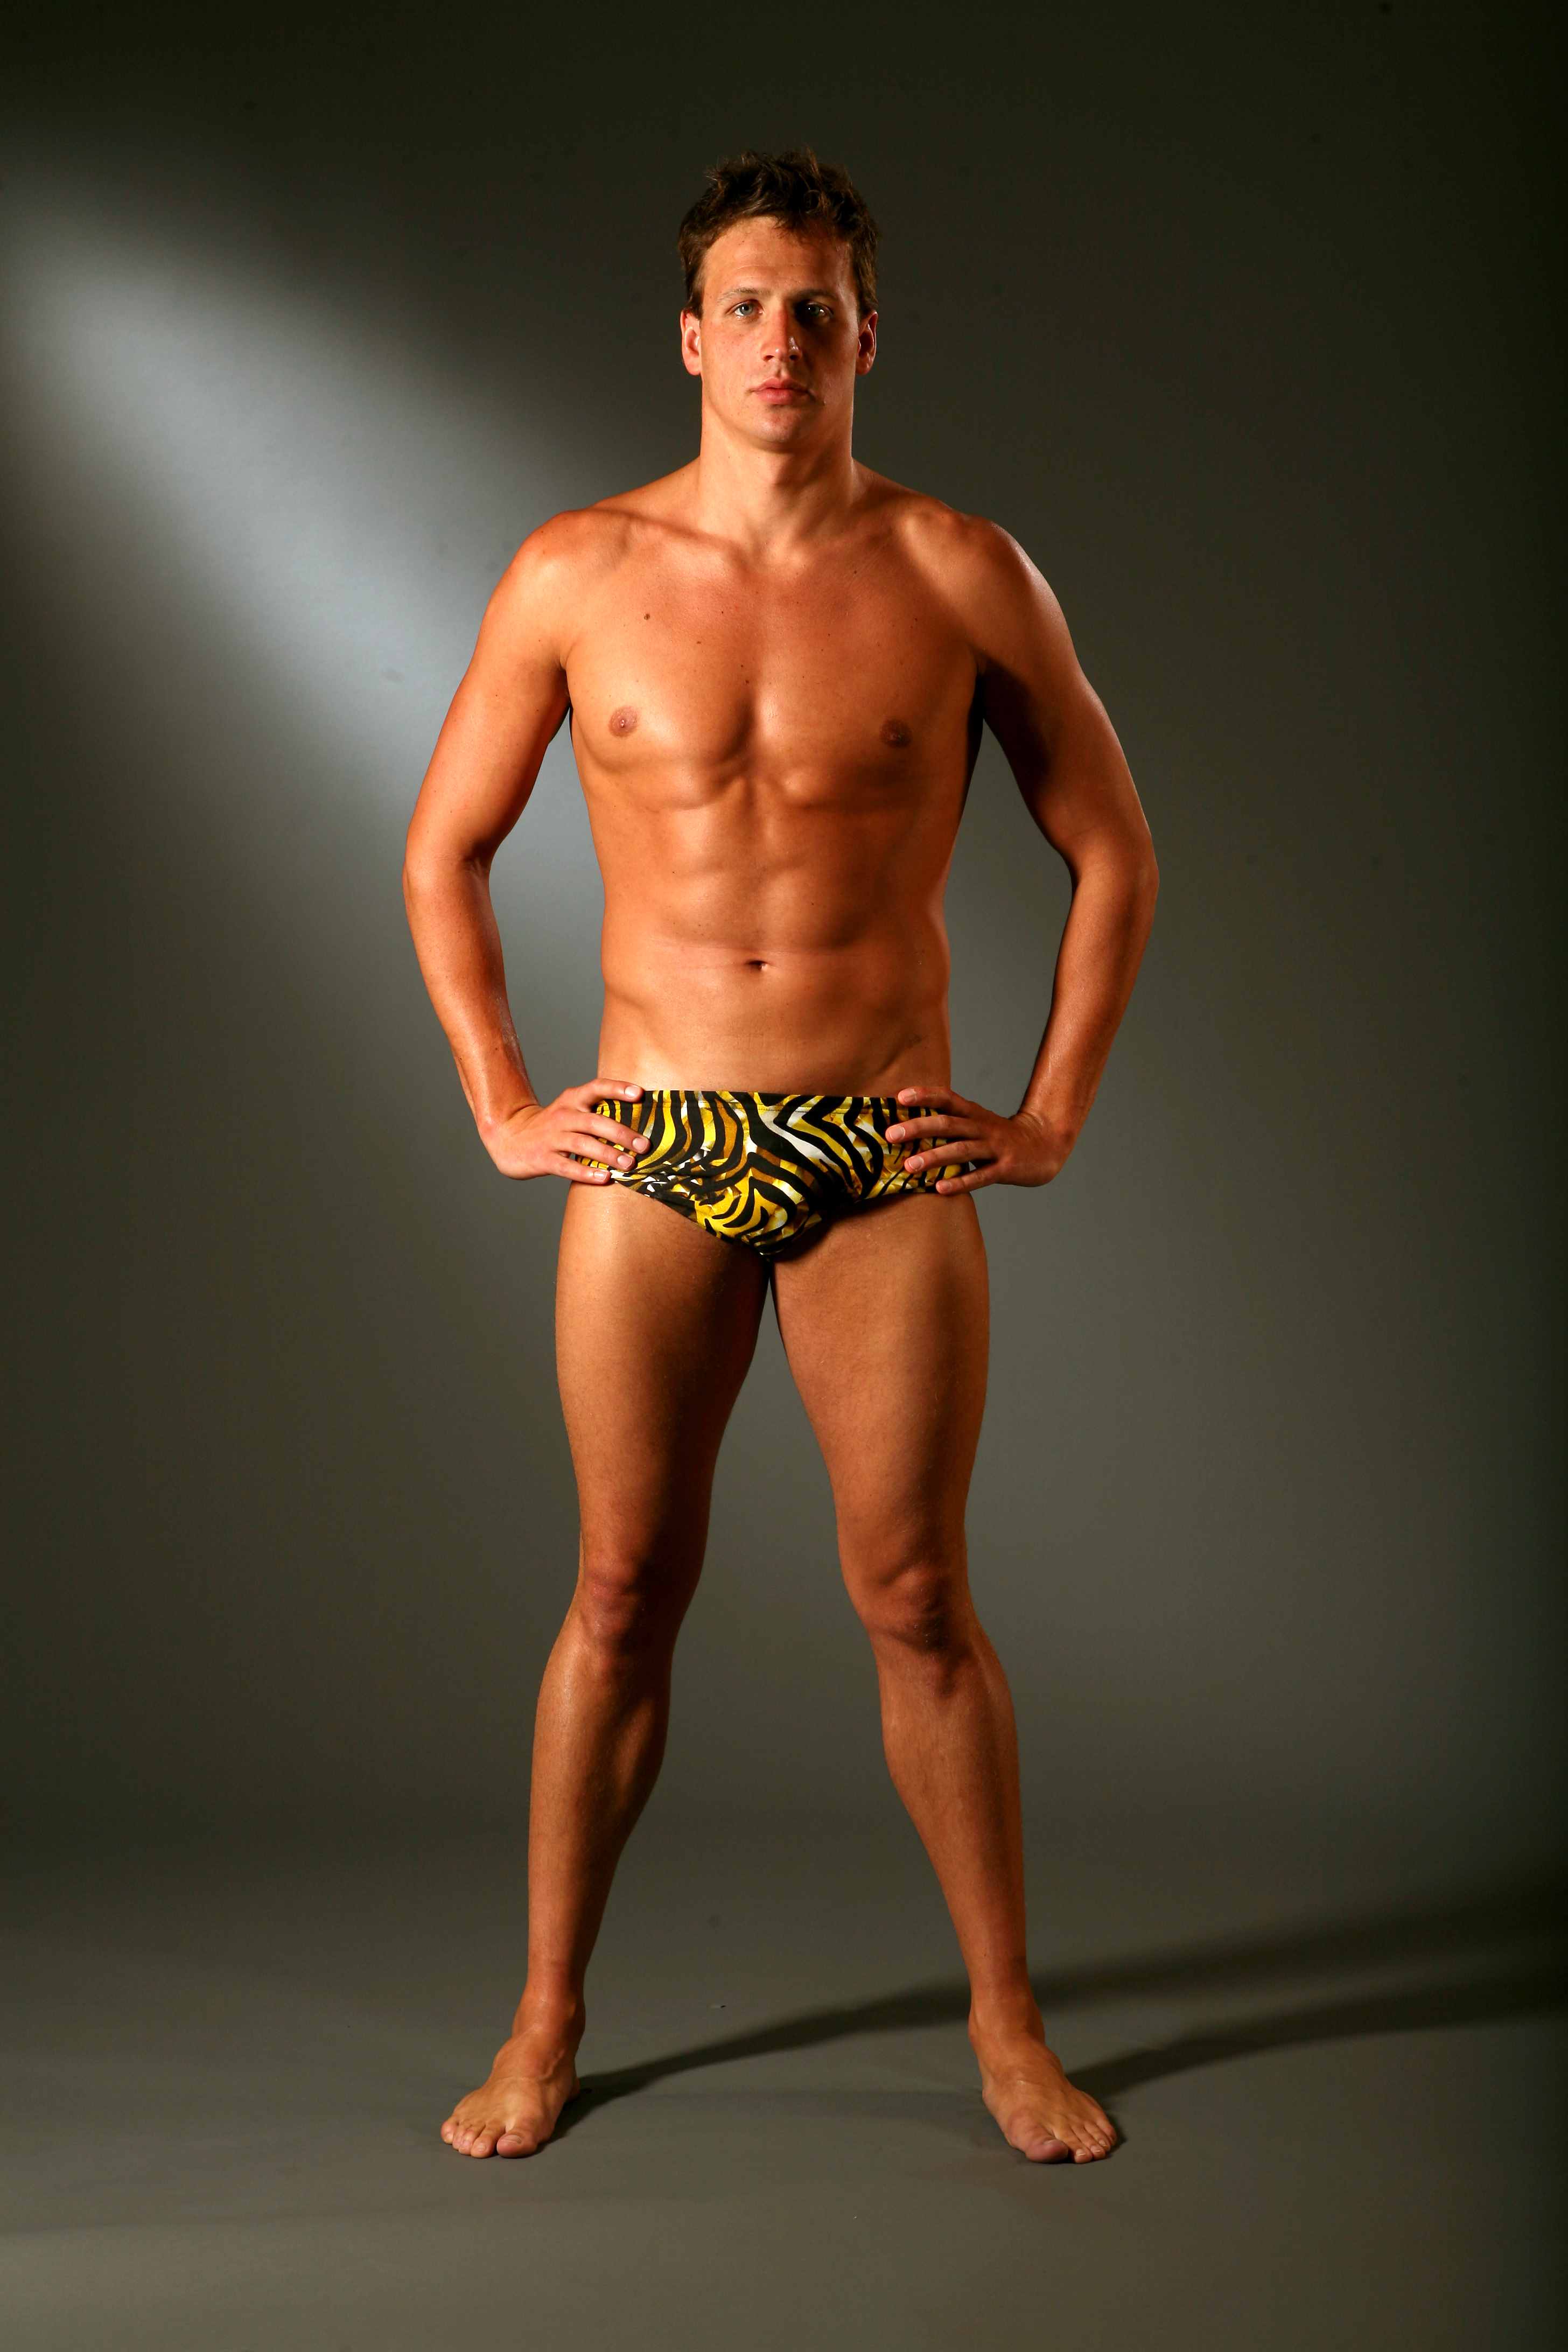 Ryan posed in his Speedo. | What Would Ryan Lochte Do? Get to Know the ...: www.popsugar.com/love/photo-gallery/18456658/image/24273993/Ryan...